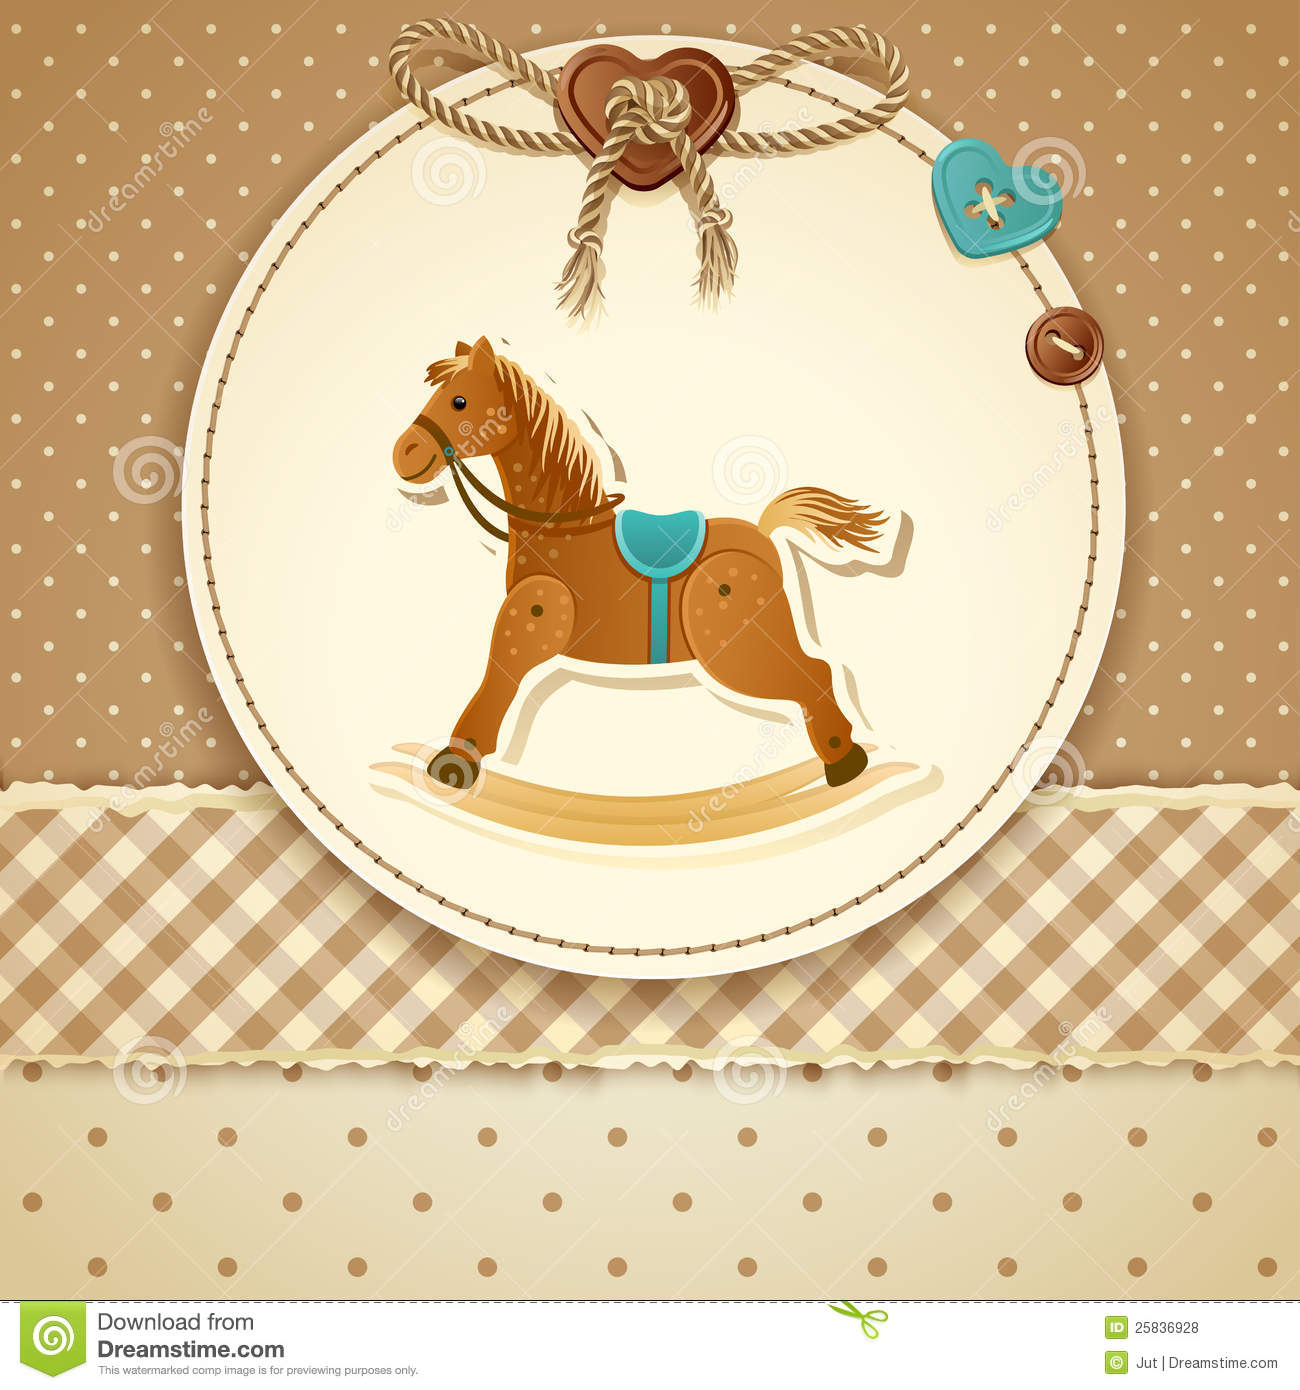 Baby Shower Card, For Baby Boy, With Rocking Horse And Blue-green ...